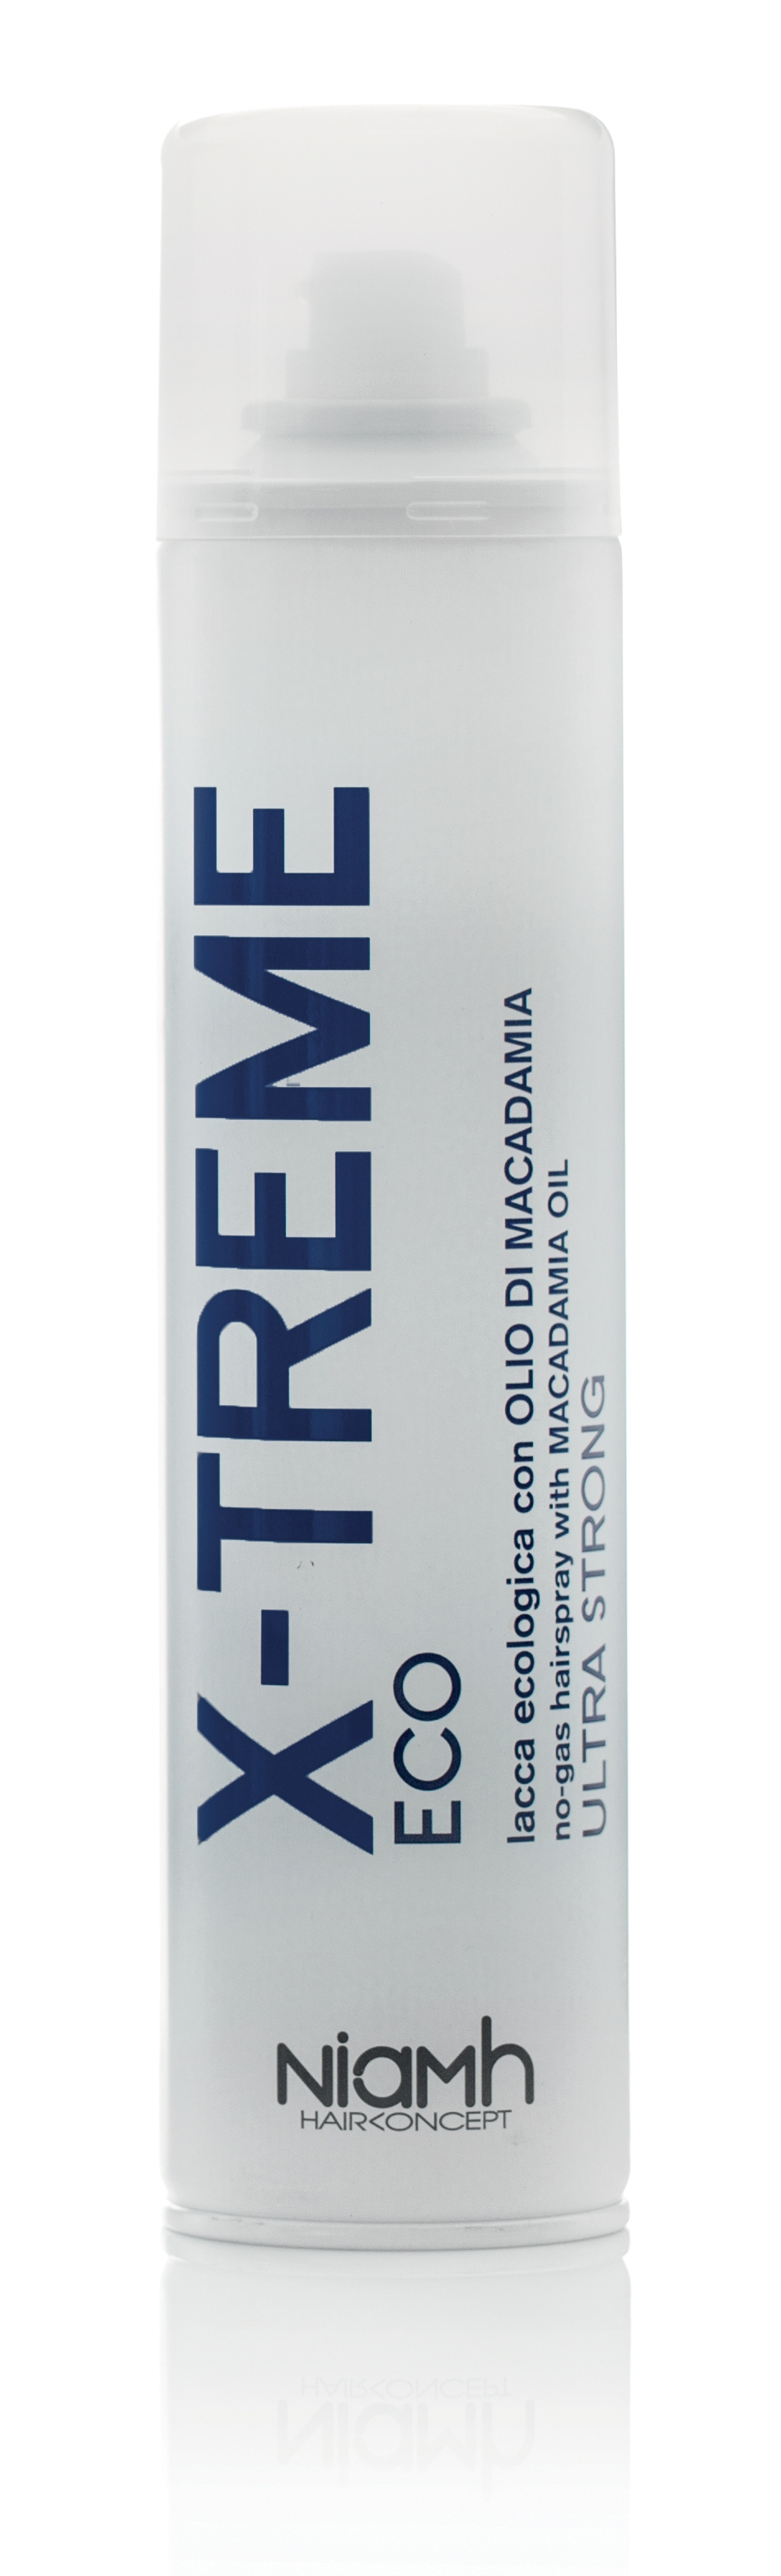 Niamh Hairkoncept X-Treme Eco No-gas Hairspray Ultra Strong 300 ml - ekologický